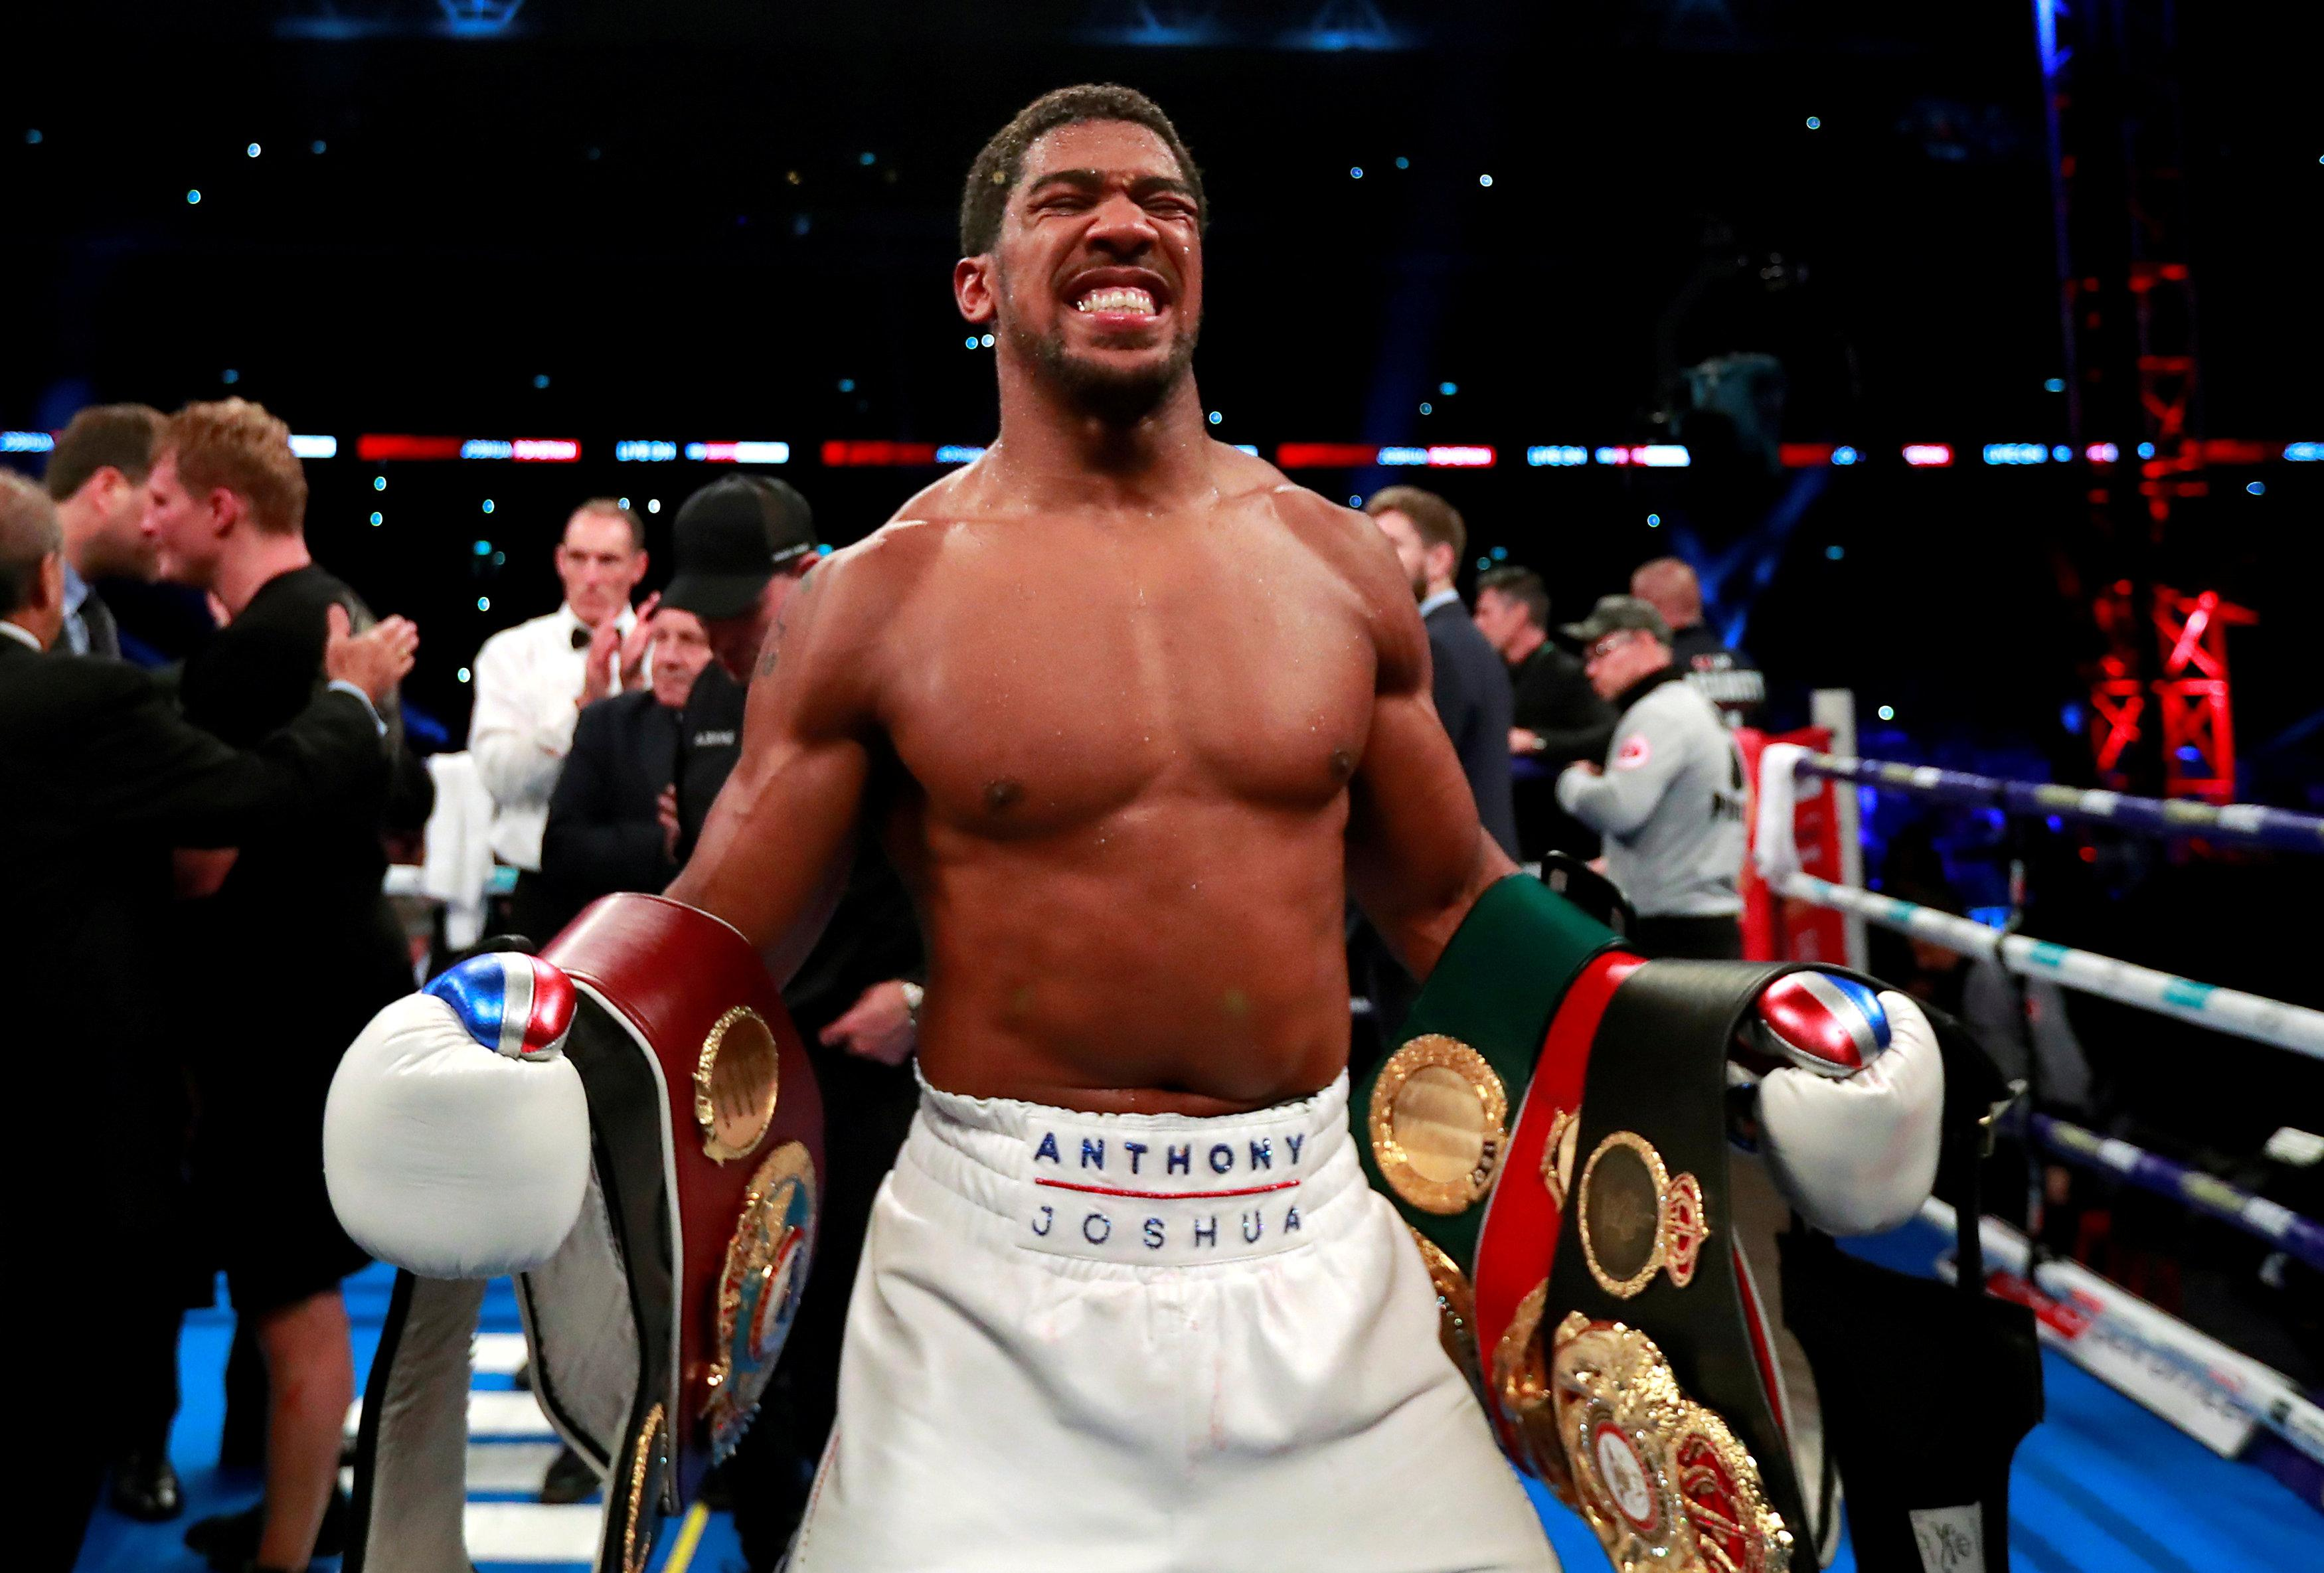 Anthony Joshua roared back from an early scare to win at Wembley